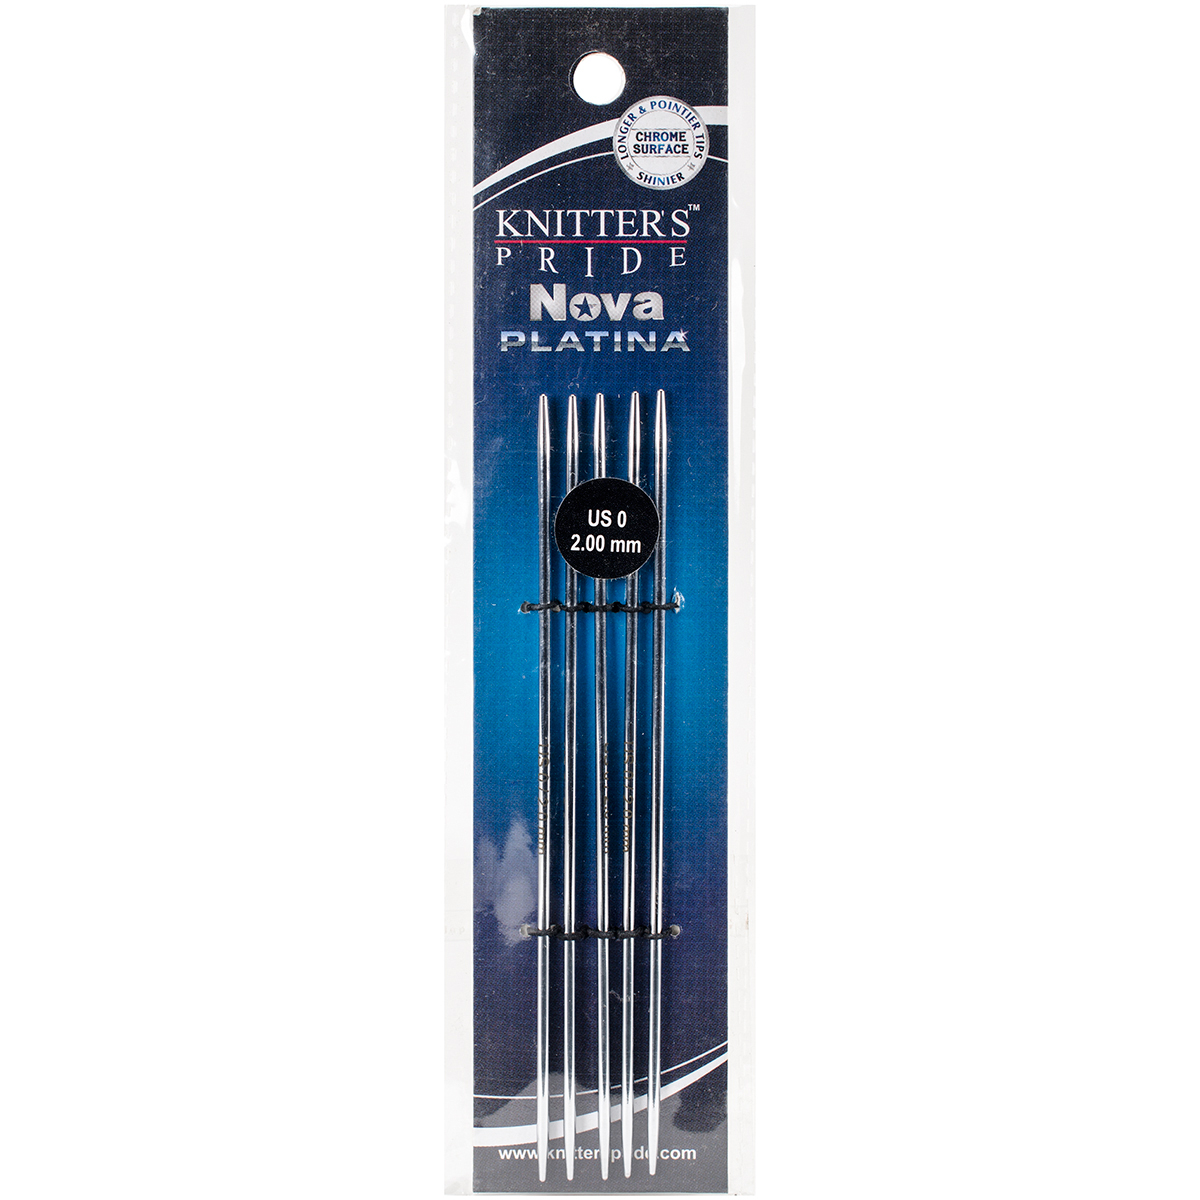 Knitter's Pride-Nova Platina Double Pointed Needles 5-Size 0/2mm